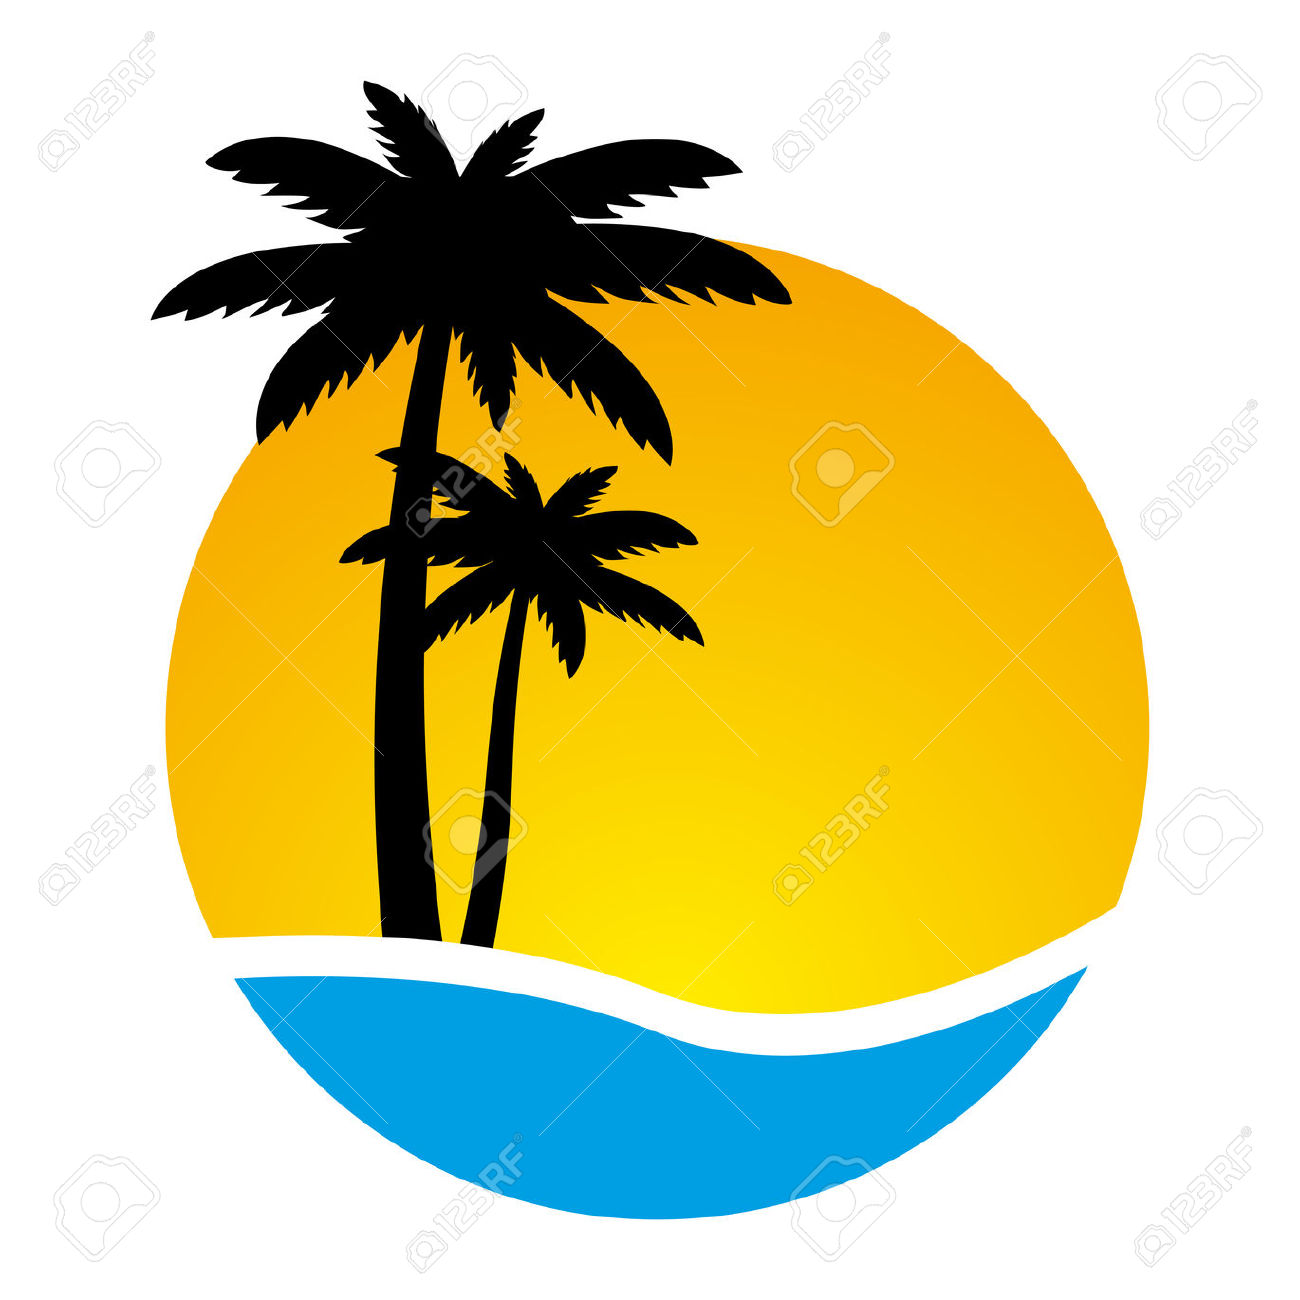 Yellow clipart palm tree Palm 64 tree clip #2